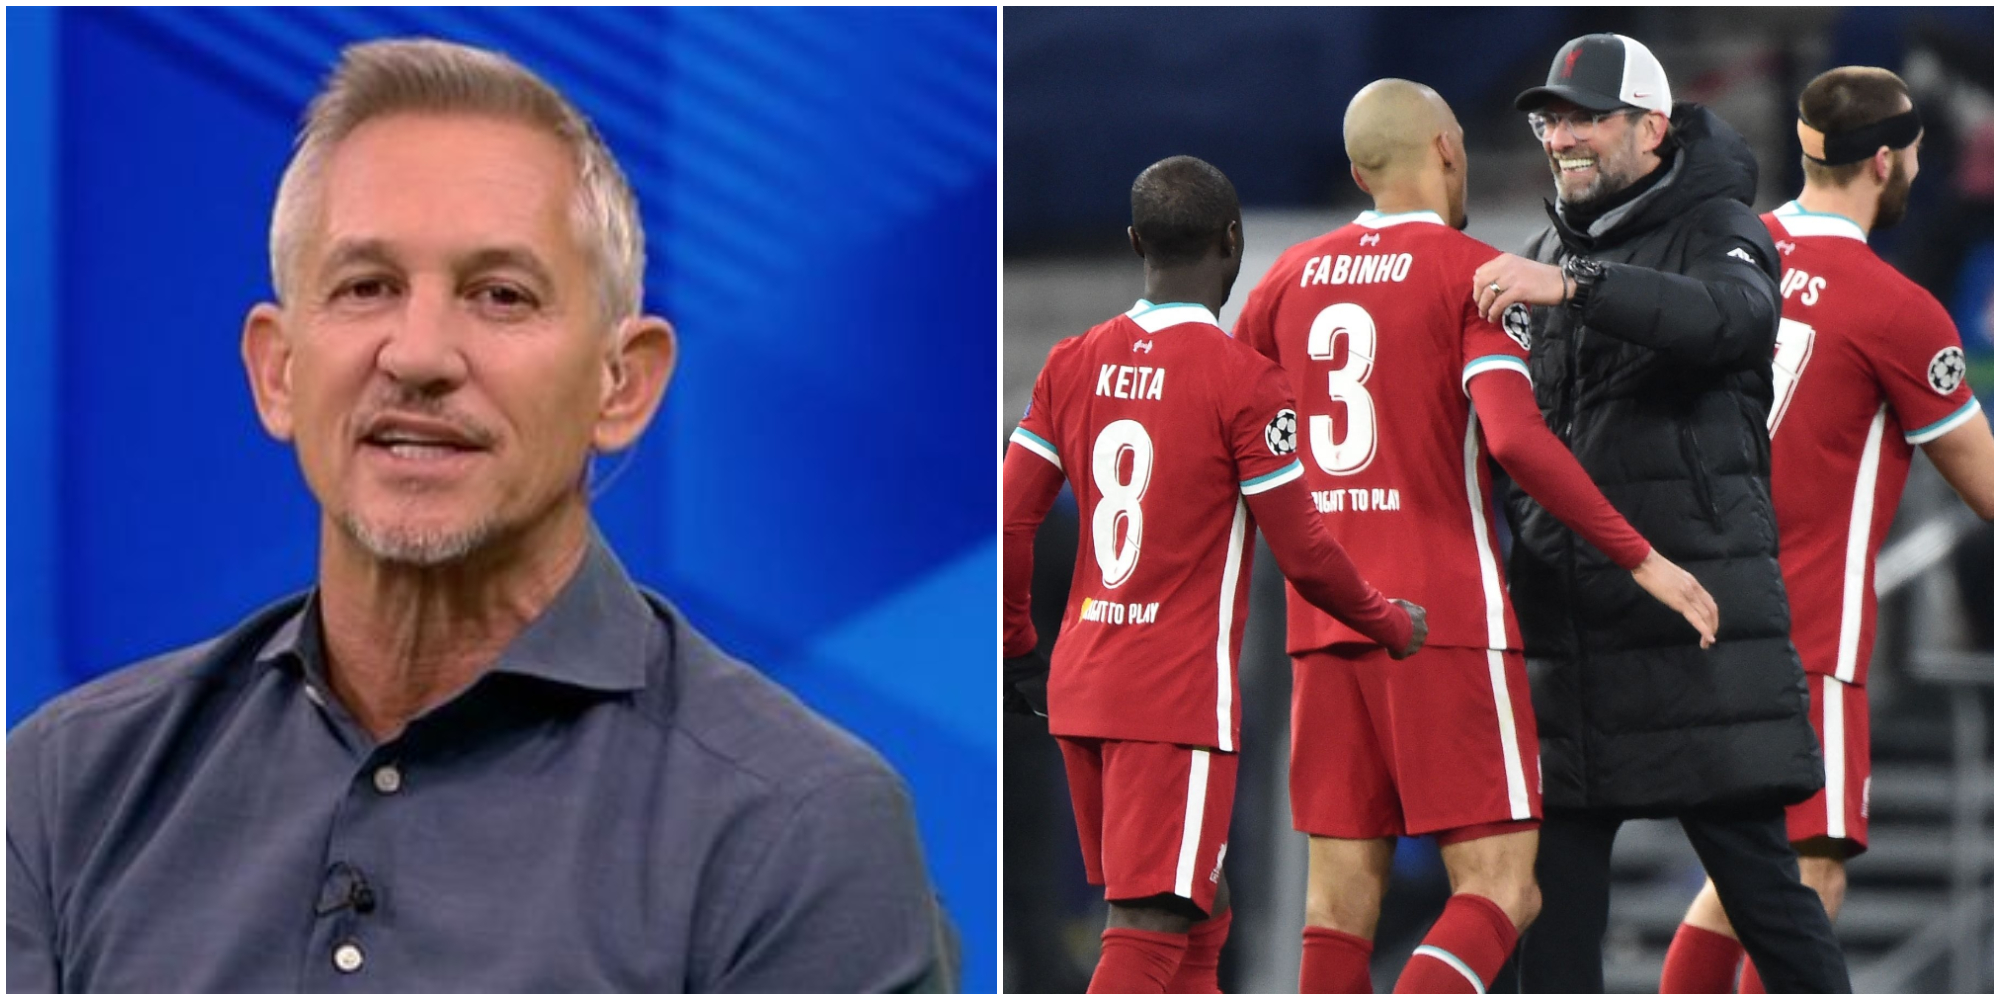 Gary Lineker's three word tweet hits the nail on the head as LFC waltz to the UCL quarter-finals